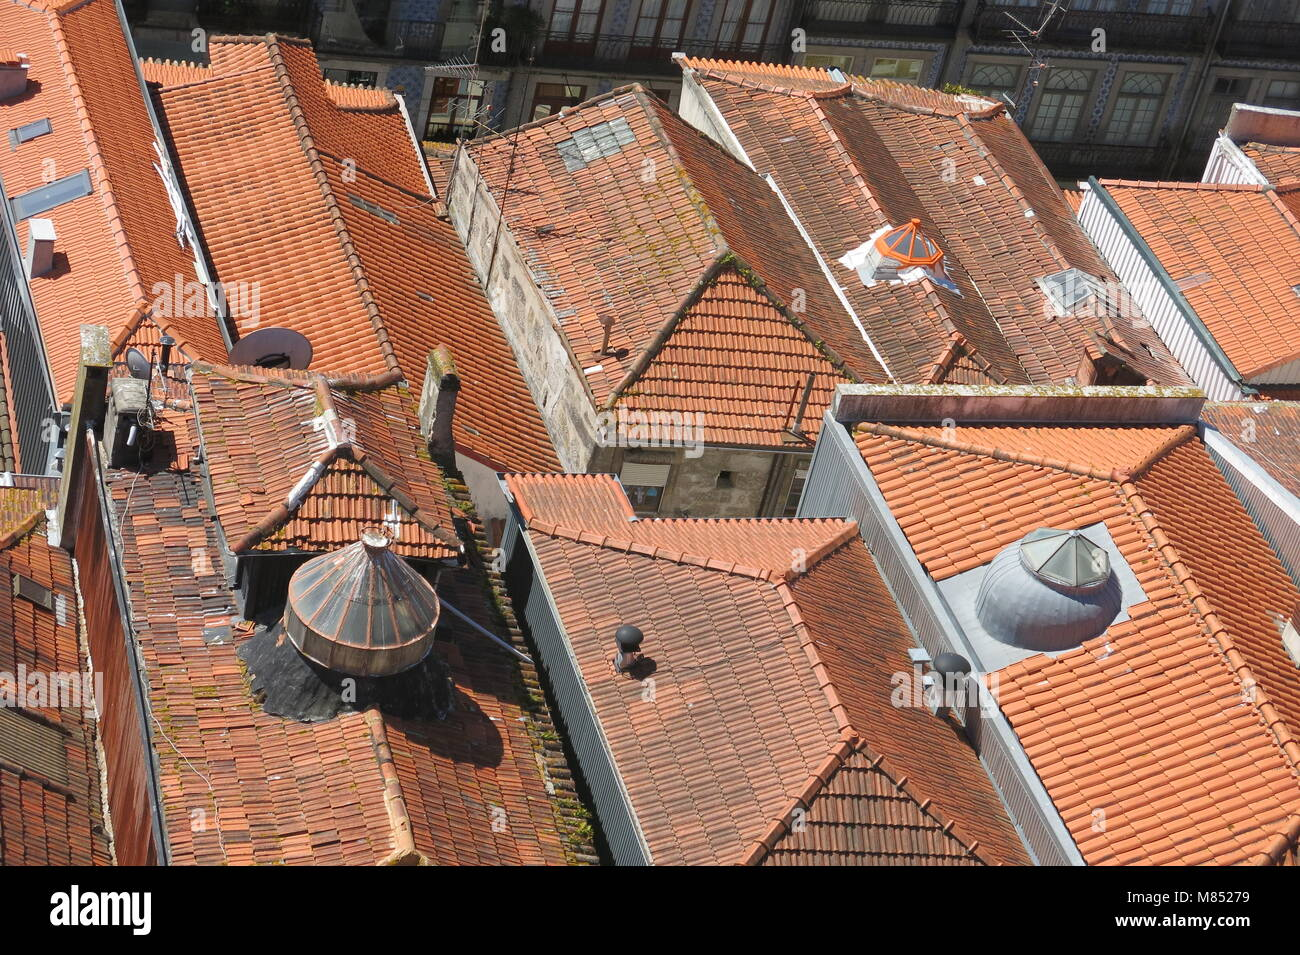 An aerial view of the terracotta tiles and red rooftops of central Porto, taken from the top of the Clerigos Church - Stock Image